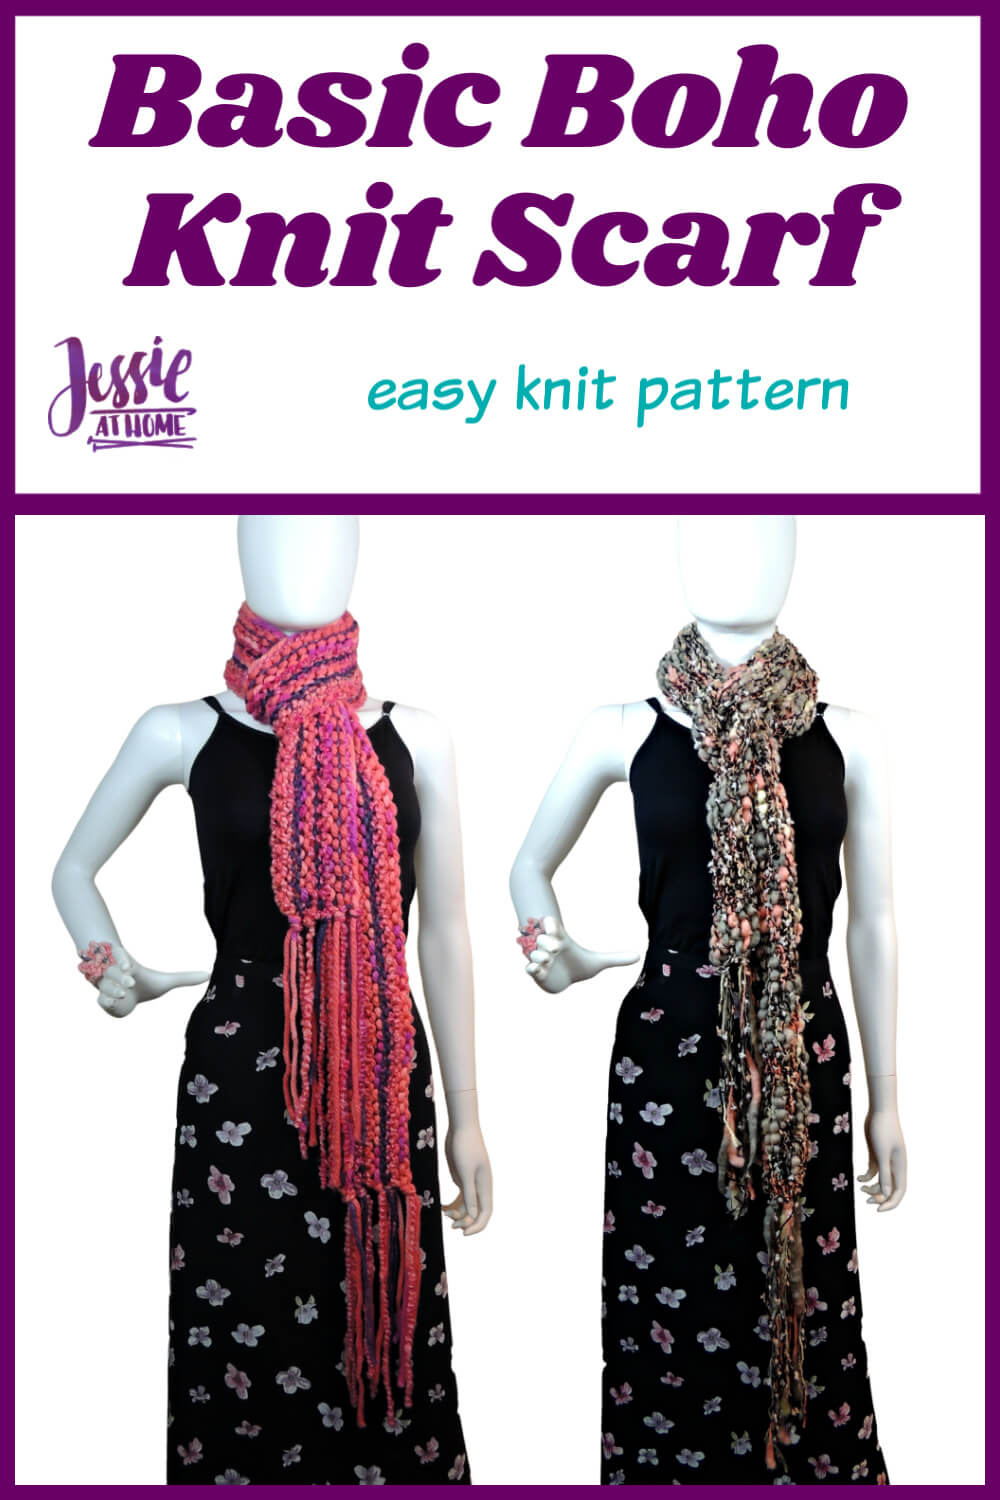 Basic Boho Knit Scarf - be fashion forward with ease!